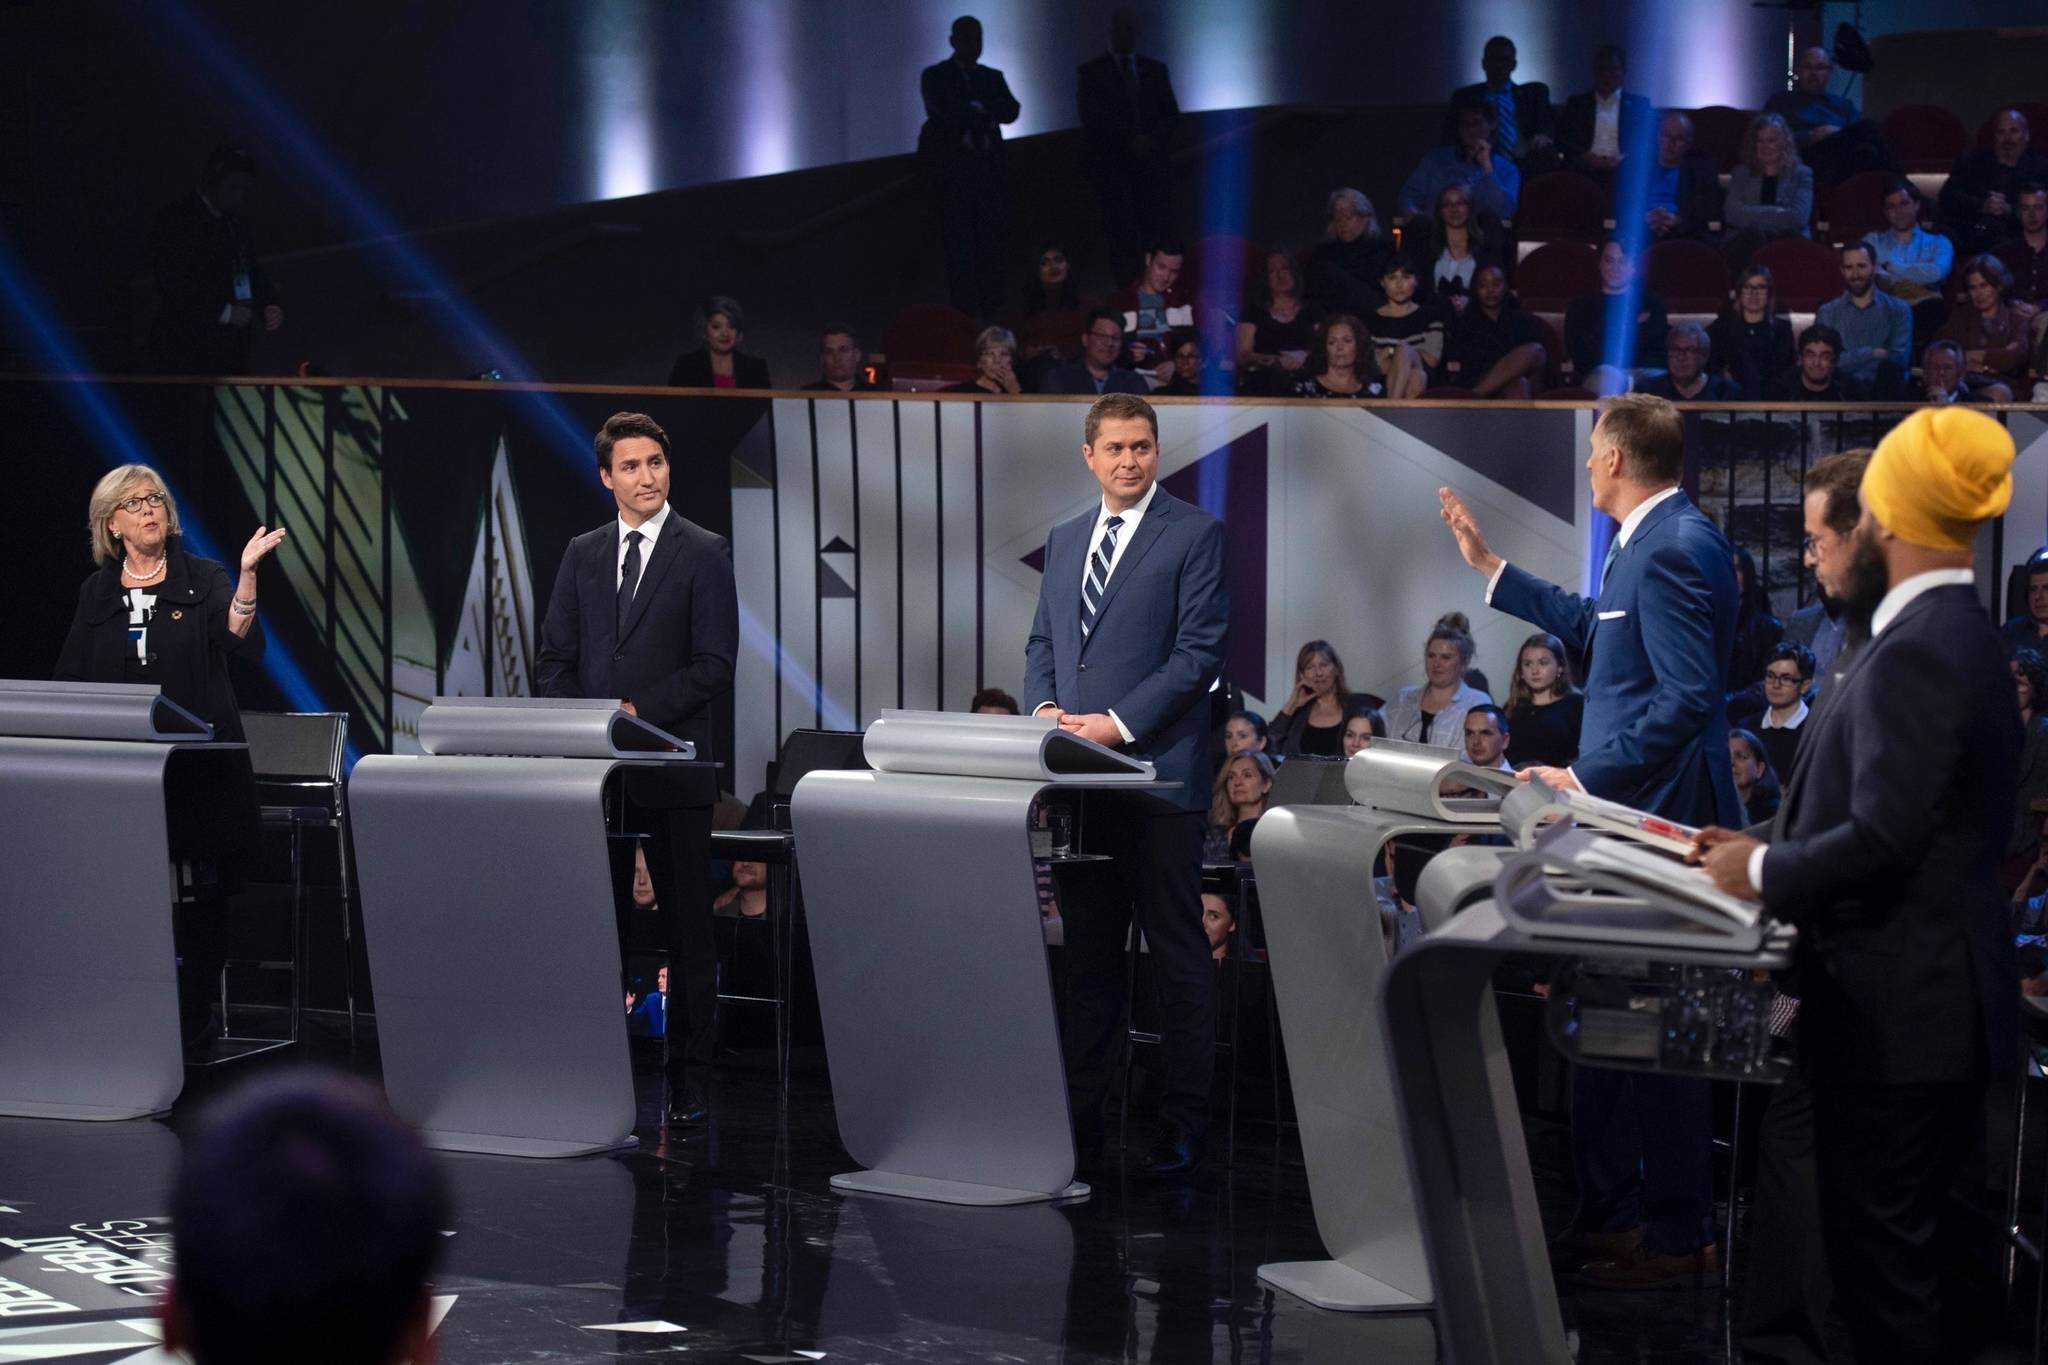 Green Party leader Elizabeth May, left, and People's Party of Canada leader Maxime Bernier, third from right, exchange ideas as Liberal leader Justin Trudeau, Conservative leader Andrew Scheer, Bloc Quebecois leader Yves-Francois Blanchet and NDP leader Jagmeet Singh look on during the Federal leaders debate in Gatineau, Que. on Monday, October 7, 2019. THE CANADIAN PRESS/Justin Tang